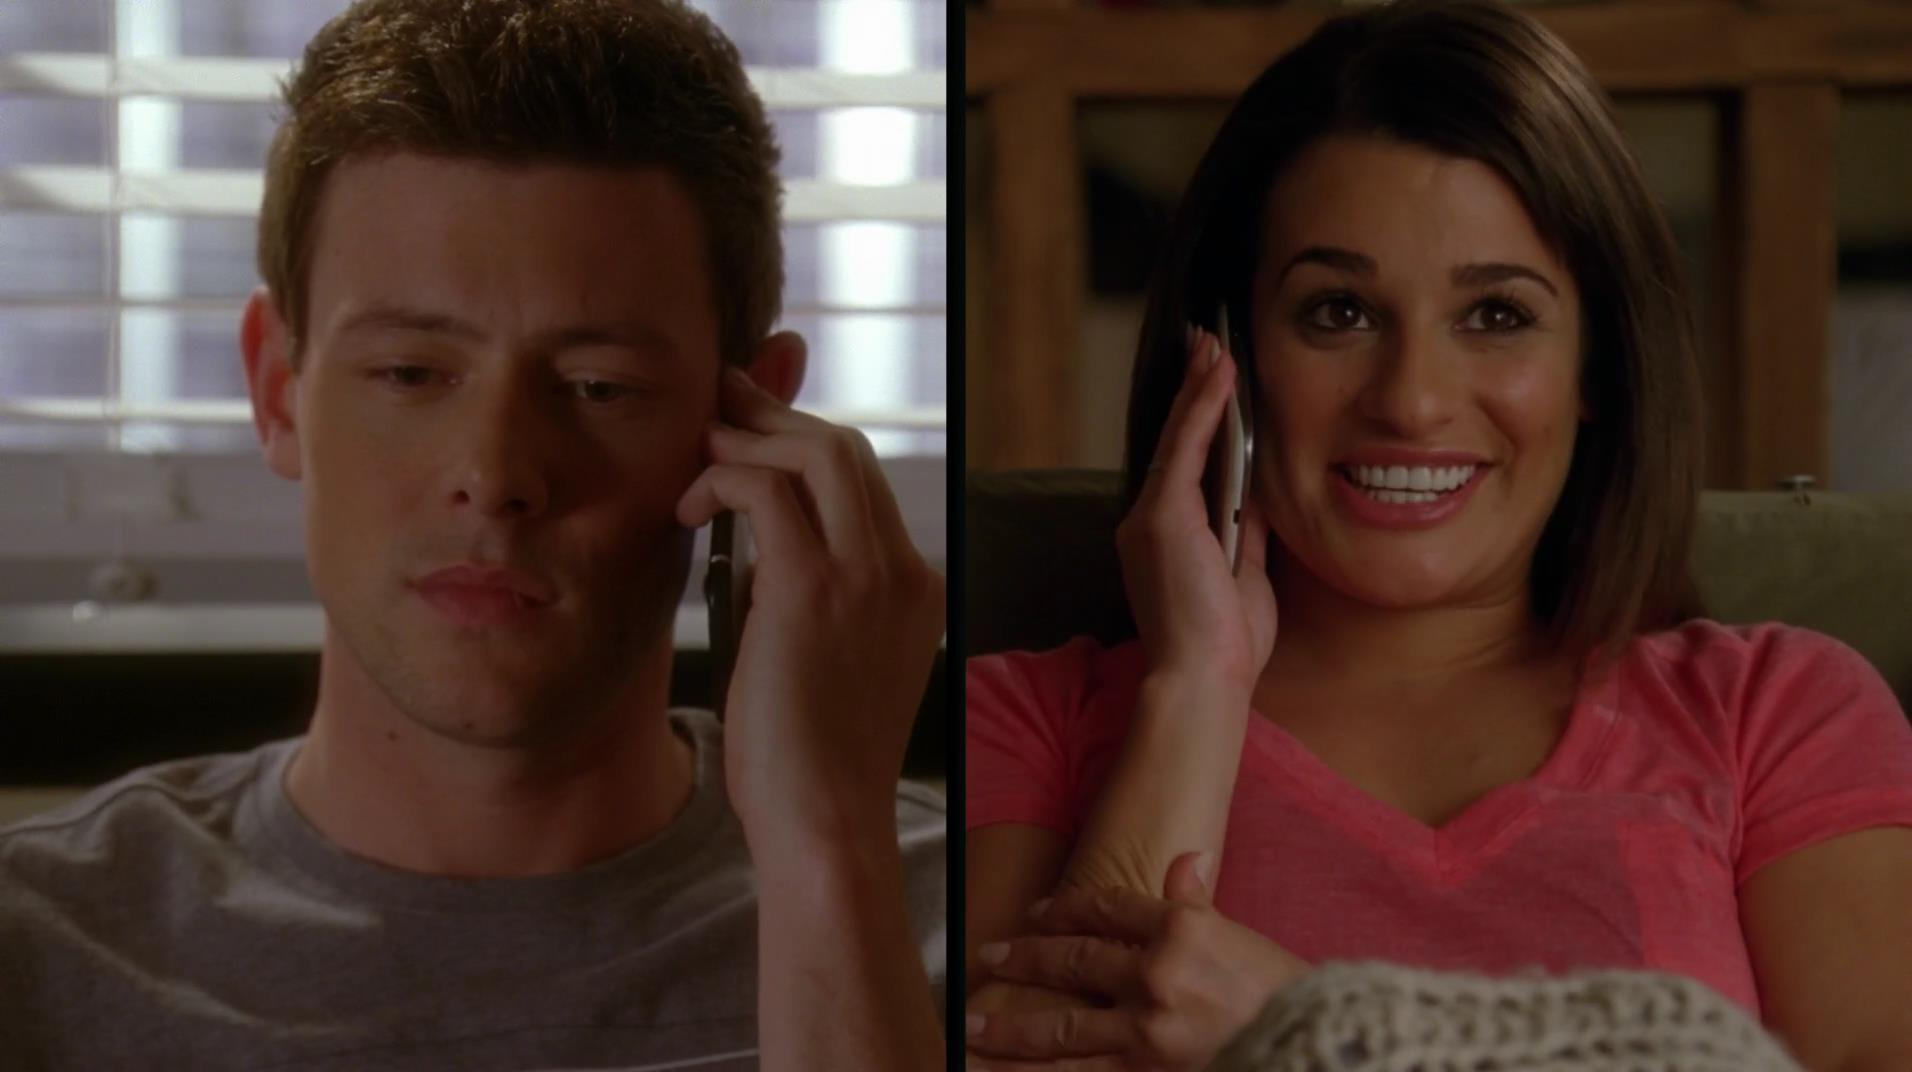 Finn-Rachel Relationship | Glee TV Show Wiki | FANDOM powered by Wikia